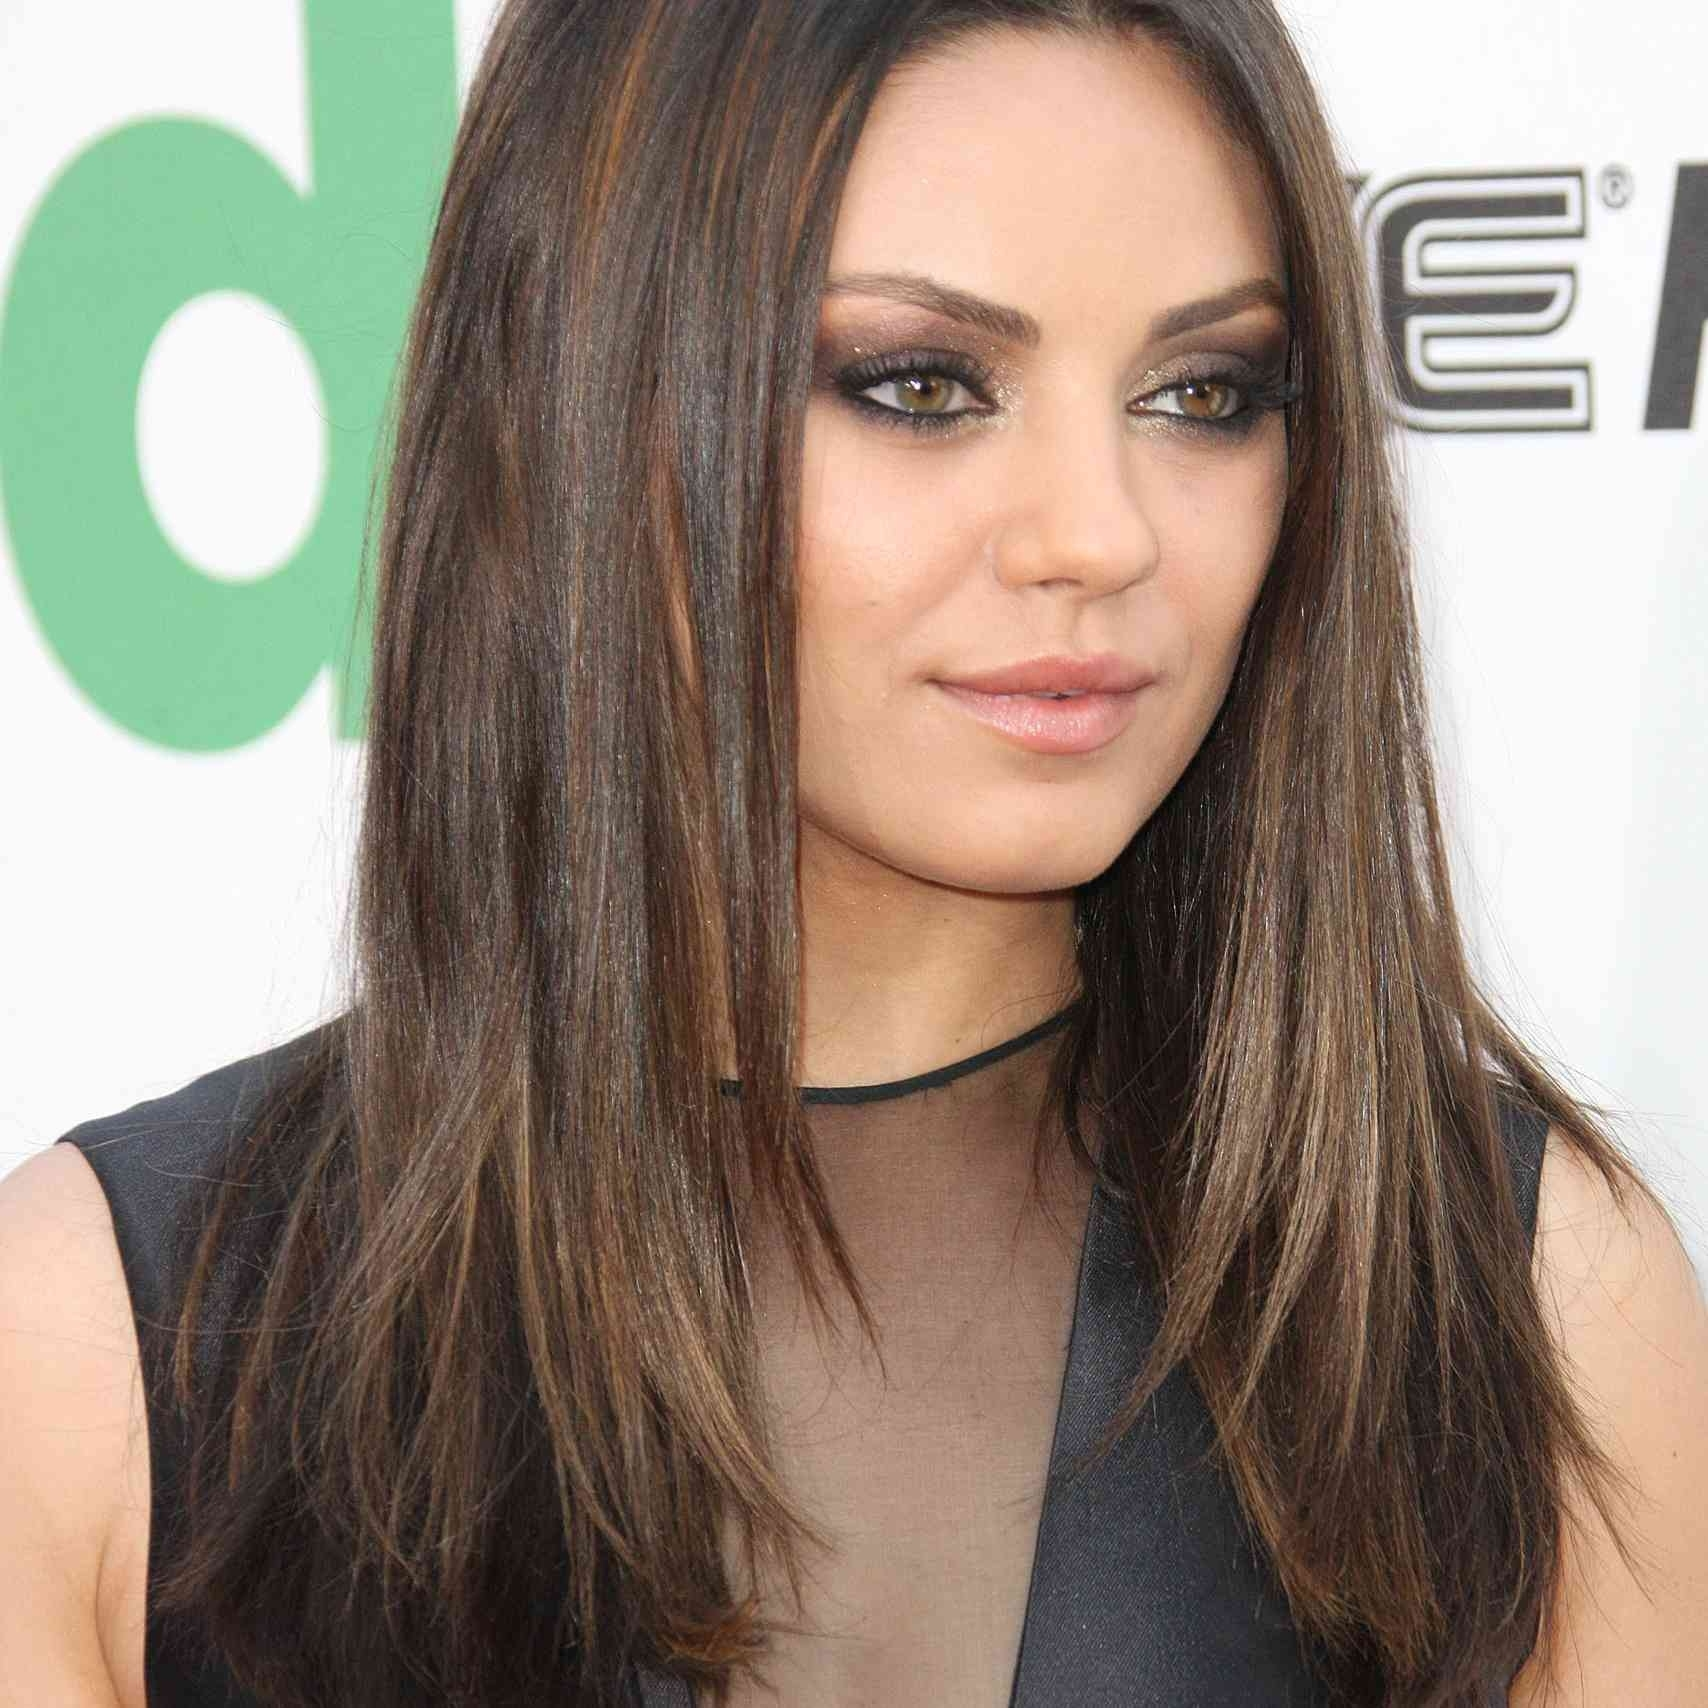 13 Flattering Hairstyles For Round Faces regarding Asian Shoulder Length Hairstyles For Round Faces